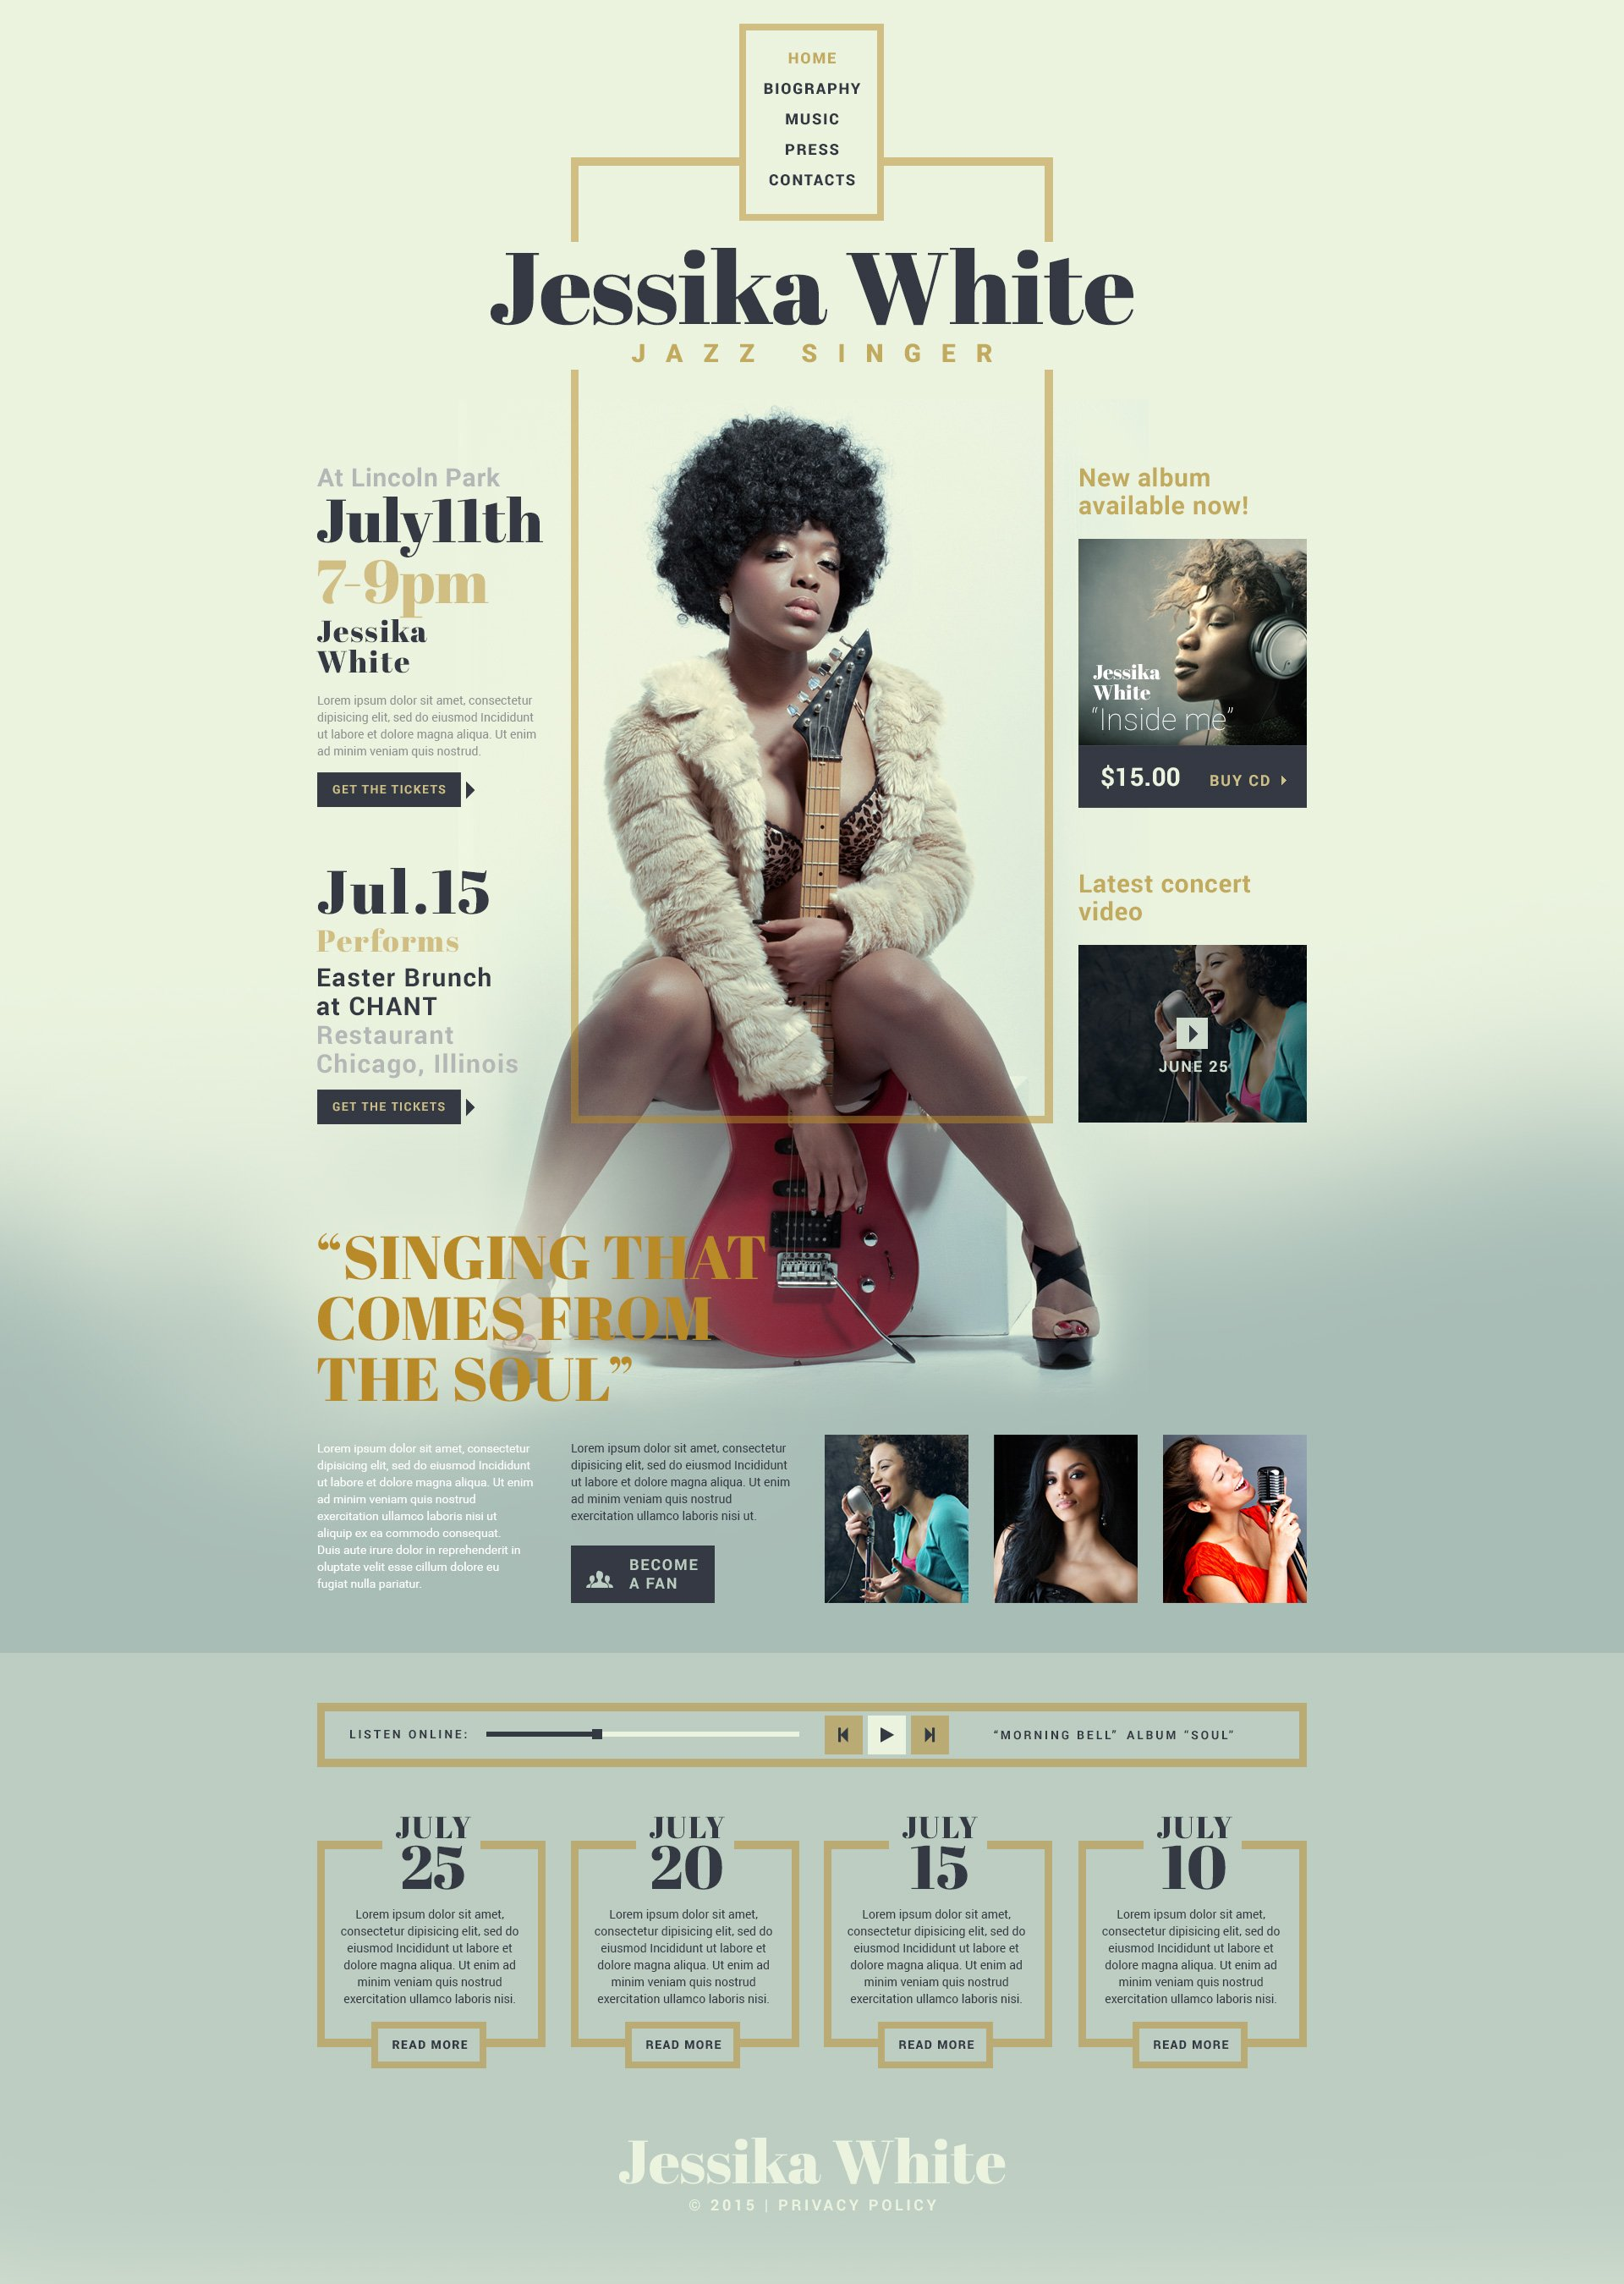 The Jessika White Music Band Responsive Javascript Animated Design 53536, one of the best website templates of its kind (music, most popular), also known as Jessika White music band website template, rock website template, biography website template, sounds website template, track website template, CD album website template, photos website template, offers website template, songs website template, instruments website template, drums website template, bass website template, vocals website template, guitar website template, tour organization website template, music website template, topics website template, hard website template, music website template, fun club website template, autograph website template, admirer and related with Jessika White music band, rock, biography, sounds, track, CD album, photos, offers, songs, instruments, drums, bass, vocals, guitar, tour organization, music, topics, hard, music, fun club, autograph, admirer, etc.